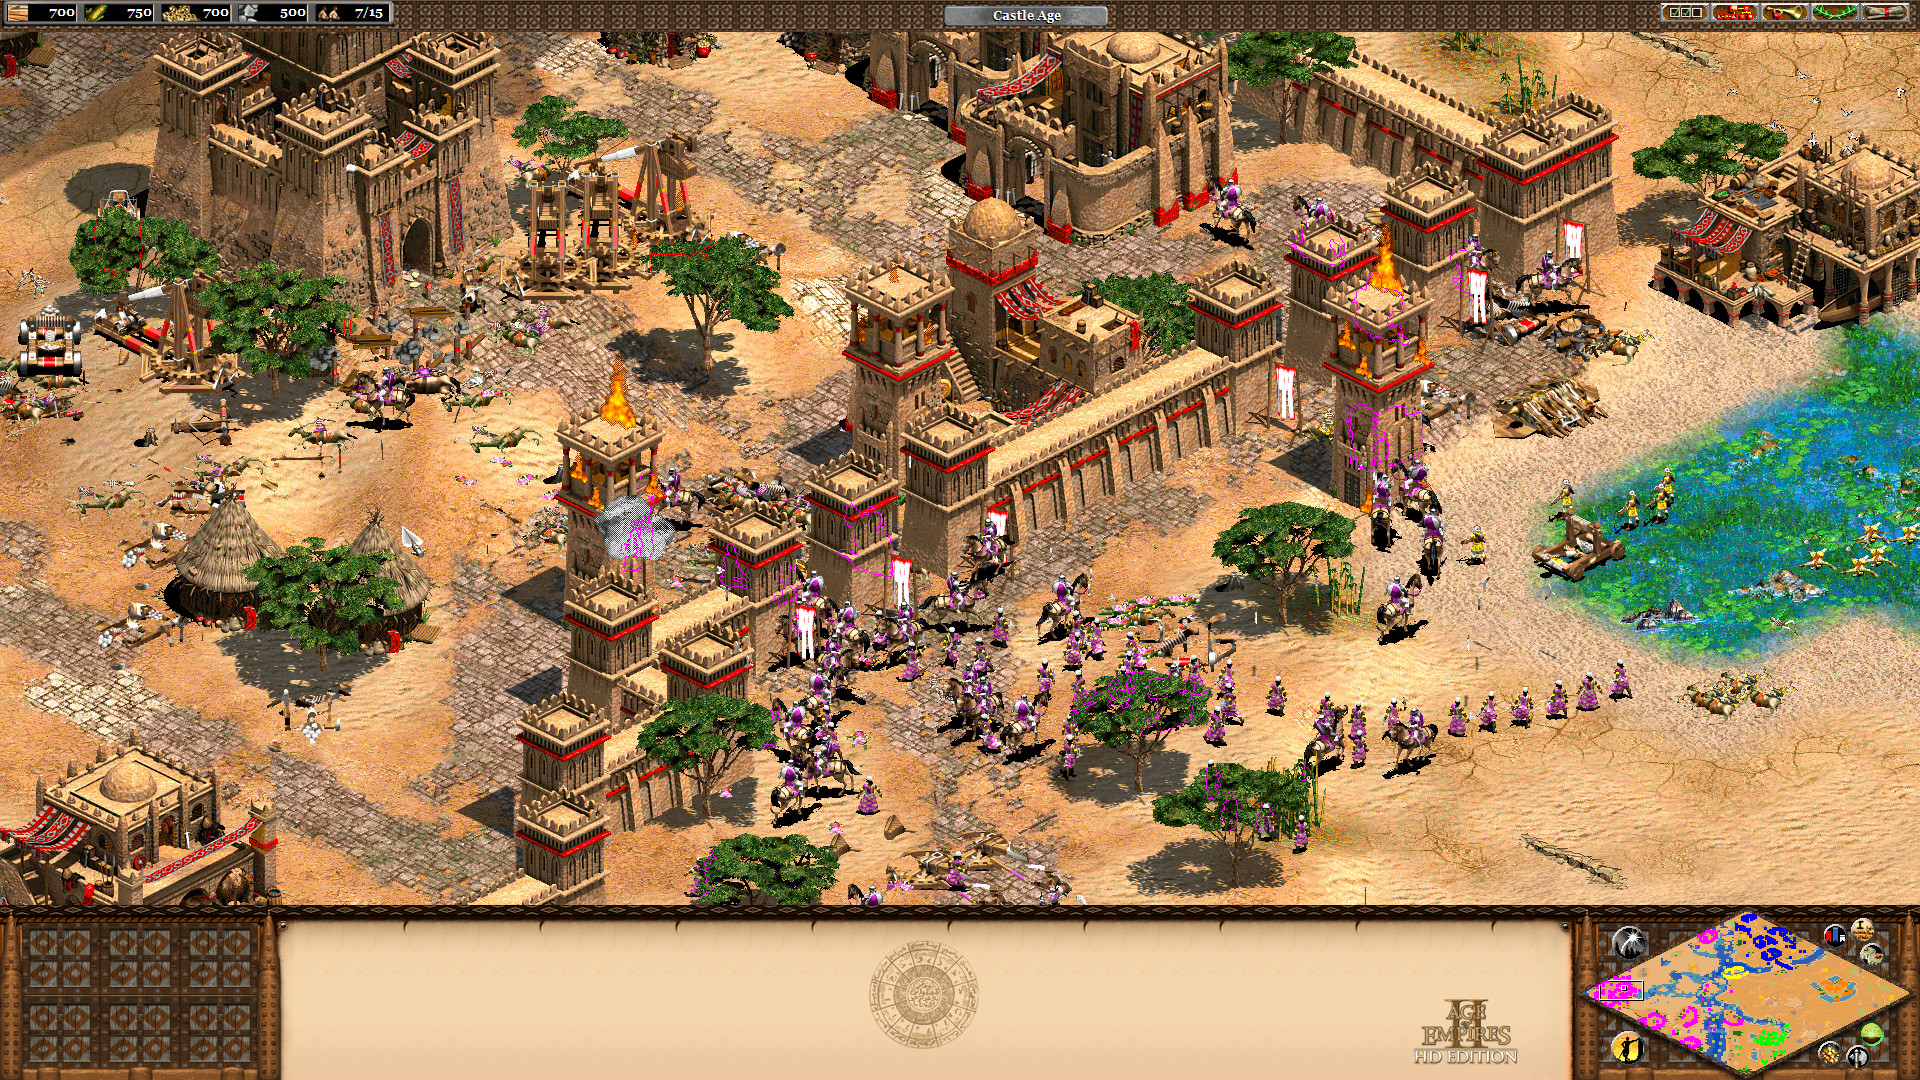 age of empires 3 crack file download